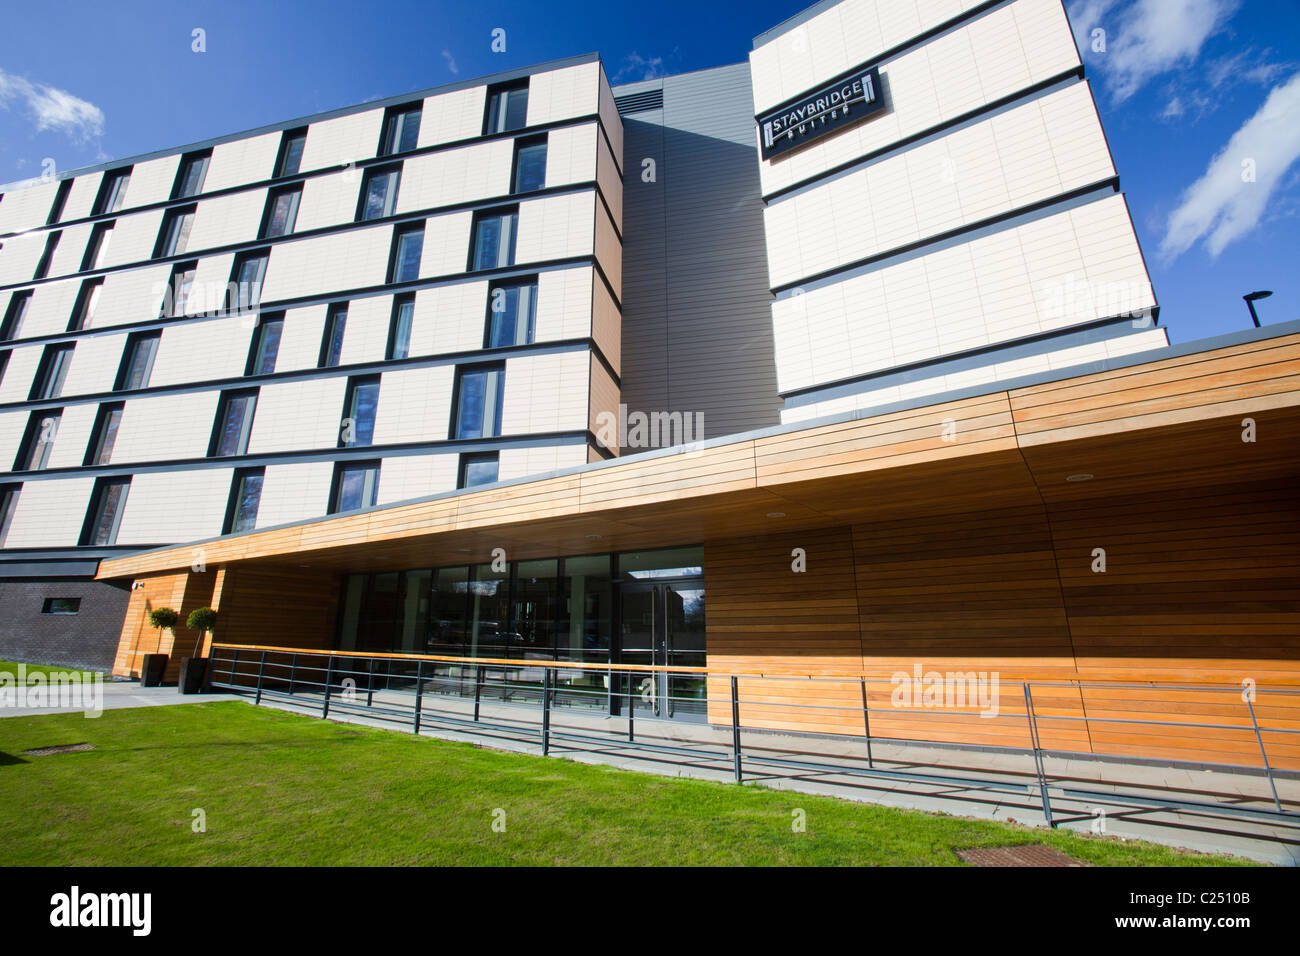 The Staybridge Suites, a new development of apartments in Newcastle City Centre, UK. - Stock Image